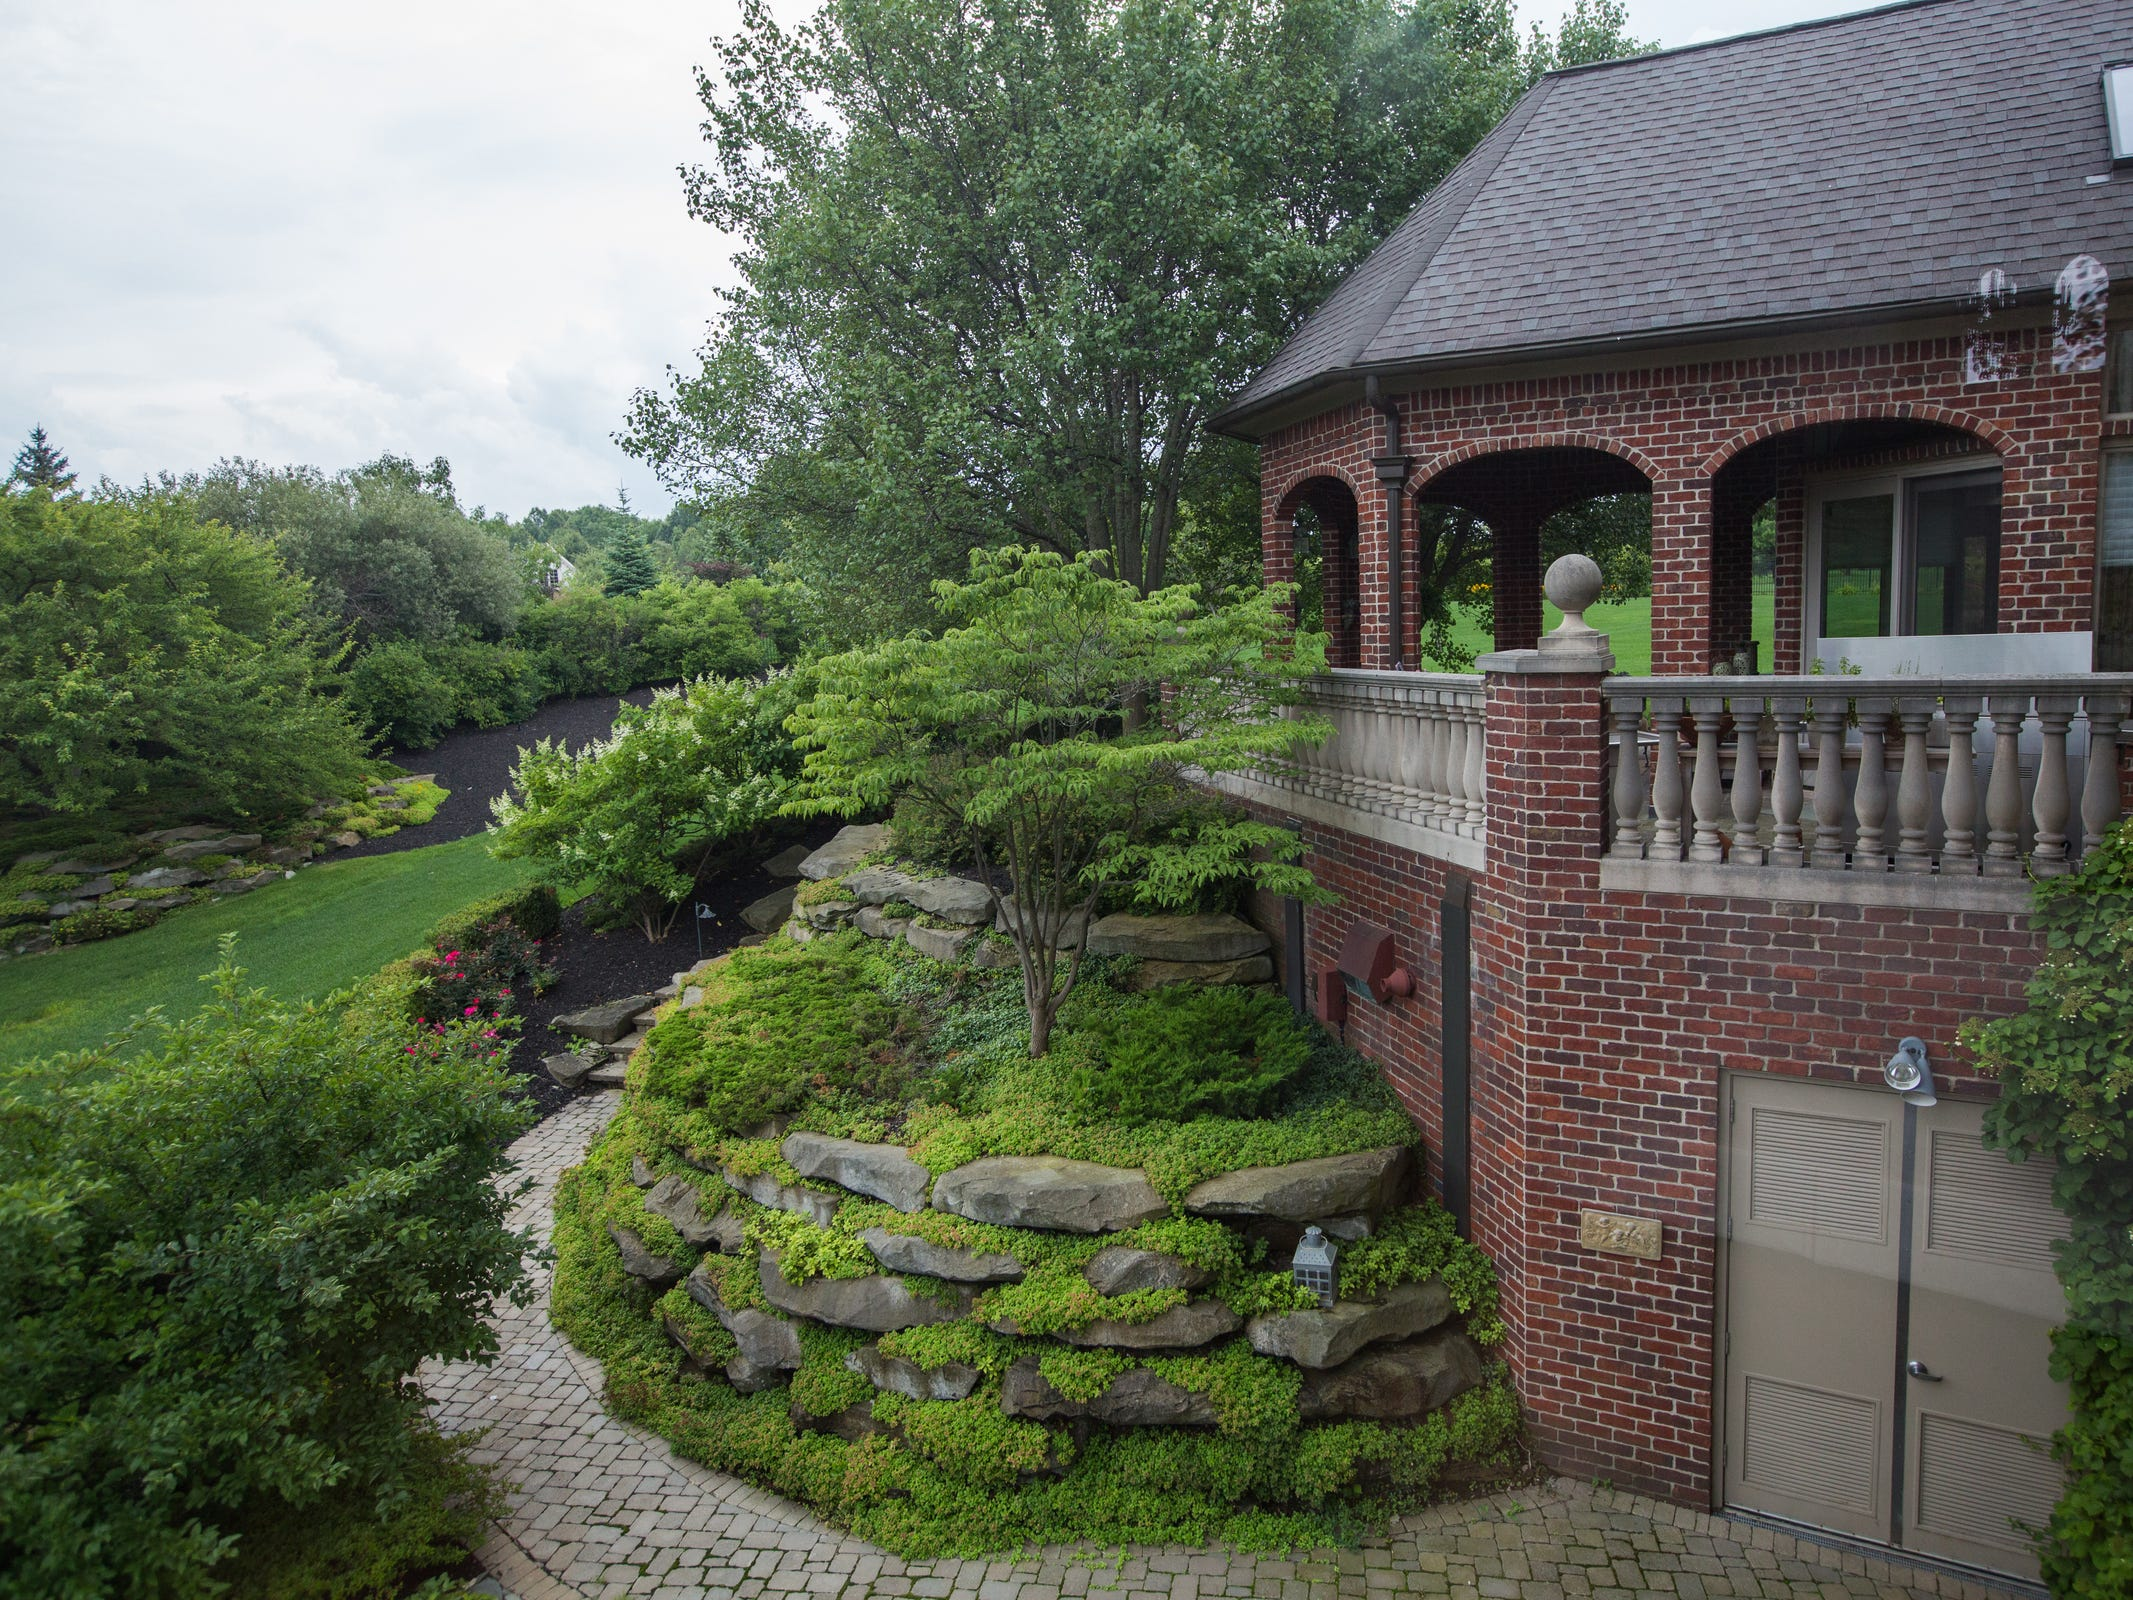 The landscaping is professional with all brick and stone, walls, stairs, an iron fence, a stream, a pond, dozens of conifers for privacy.